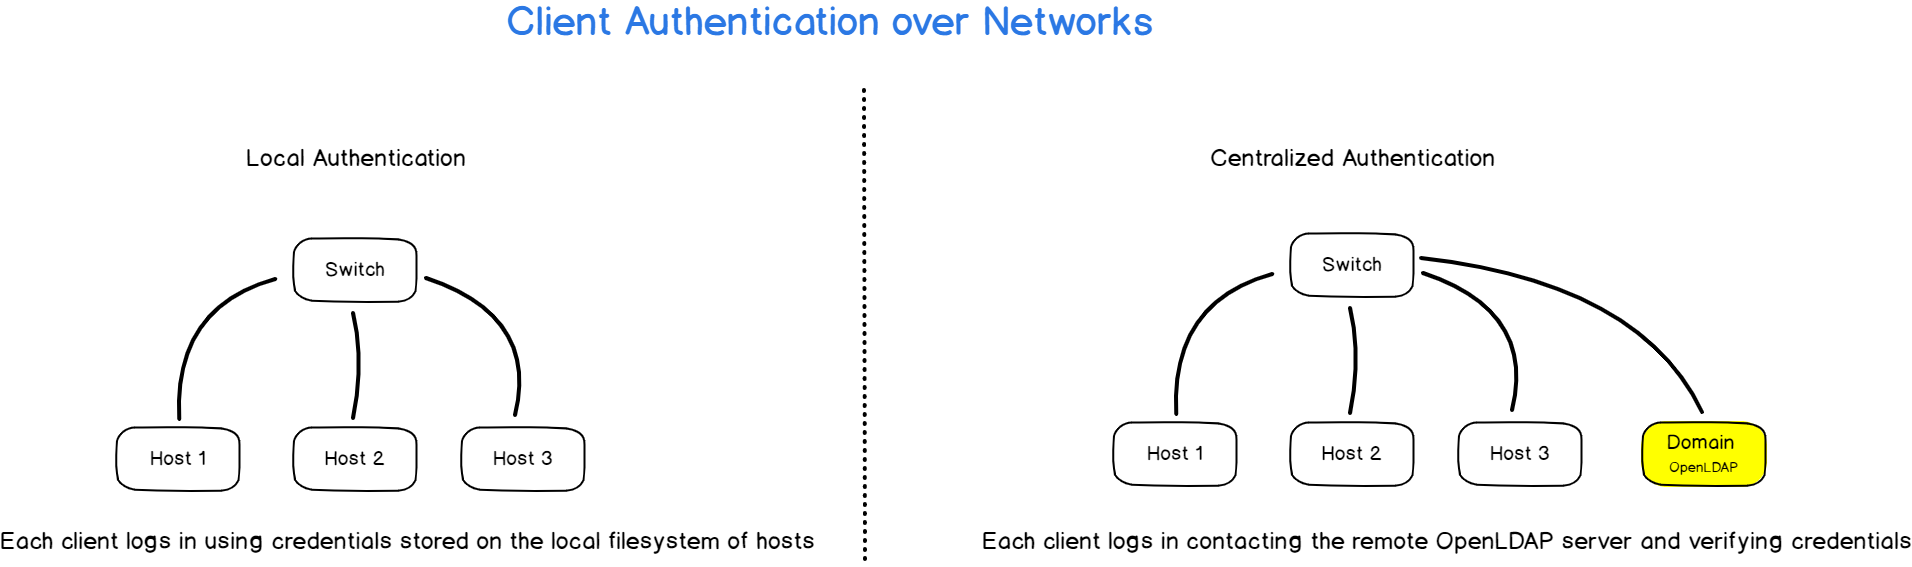 centralized authentication on linux